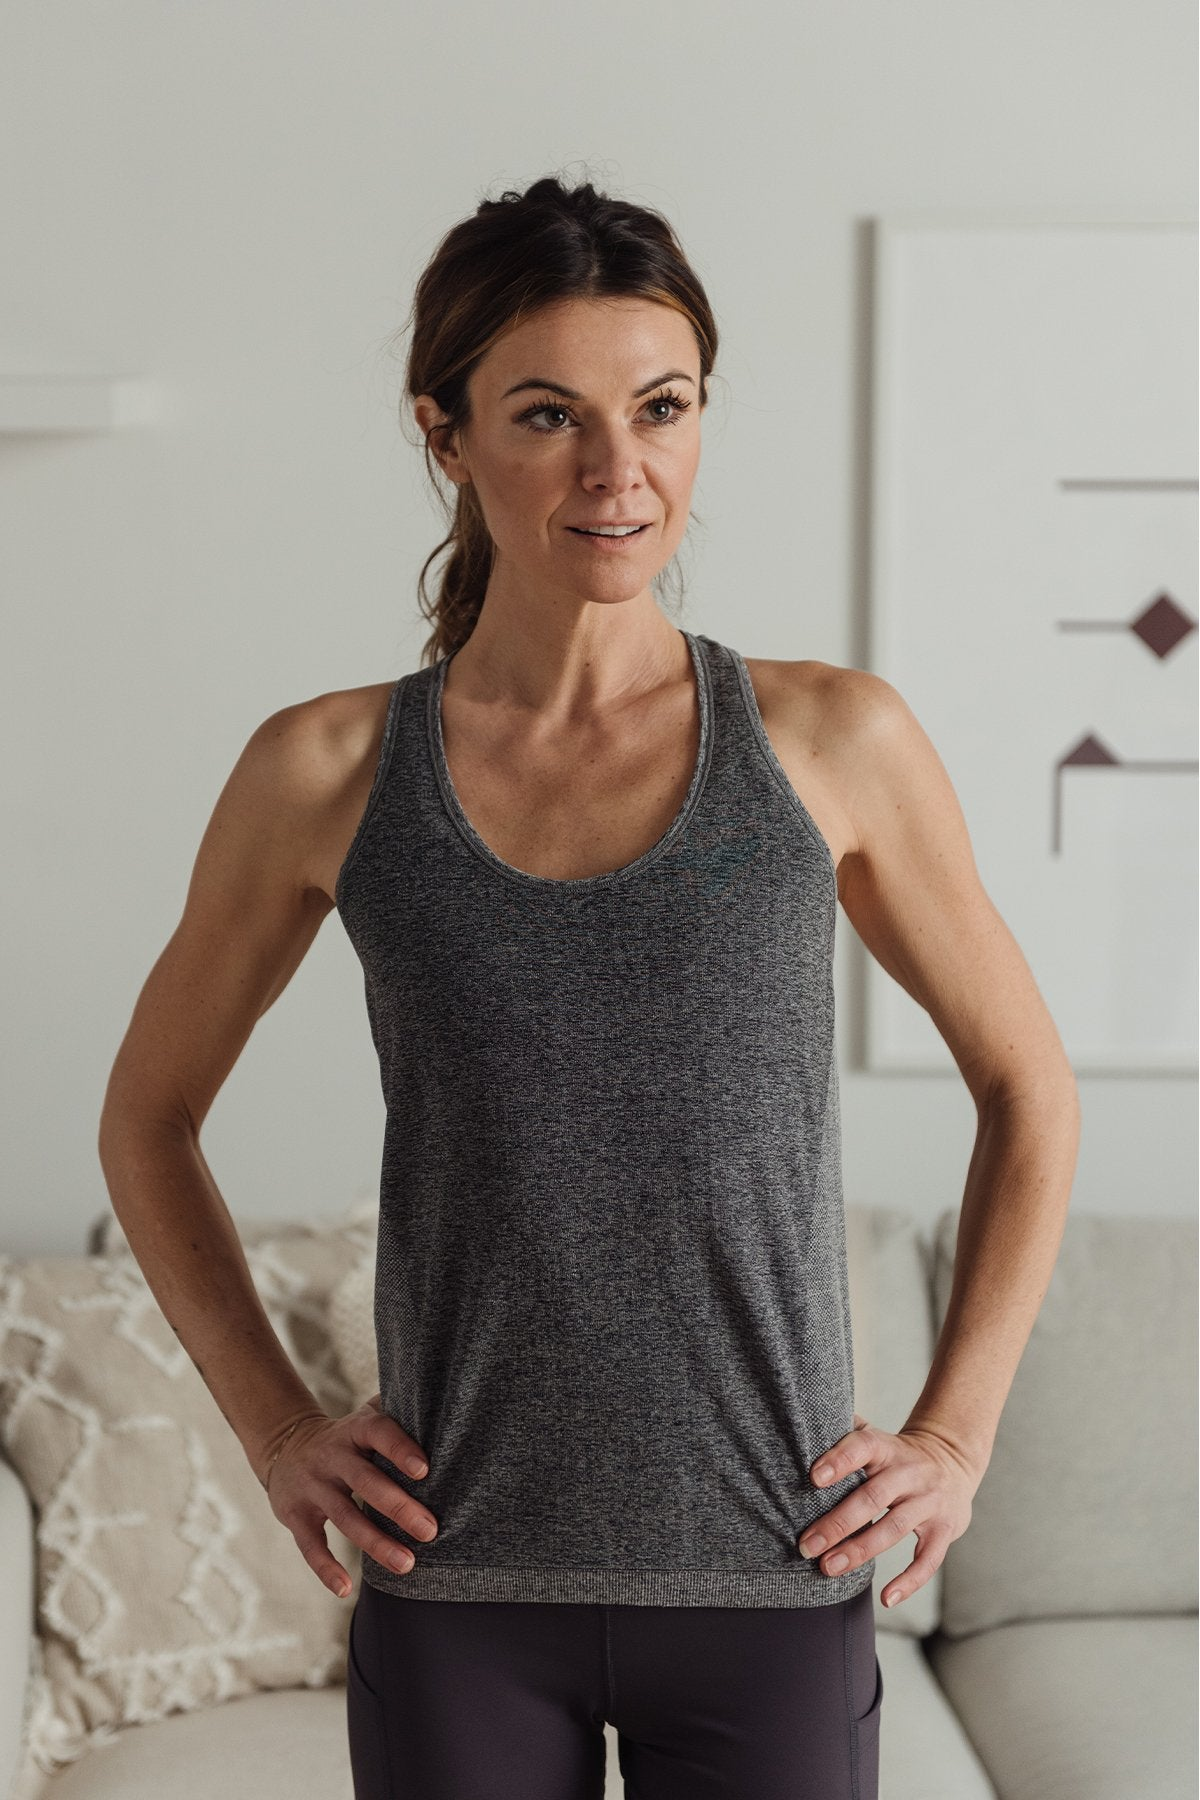 Vitality Racer Tank Heather Grey, TOPS - shopdyi.com